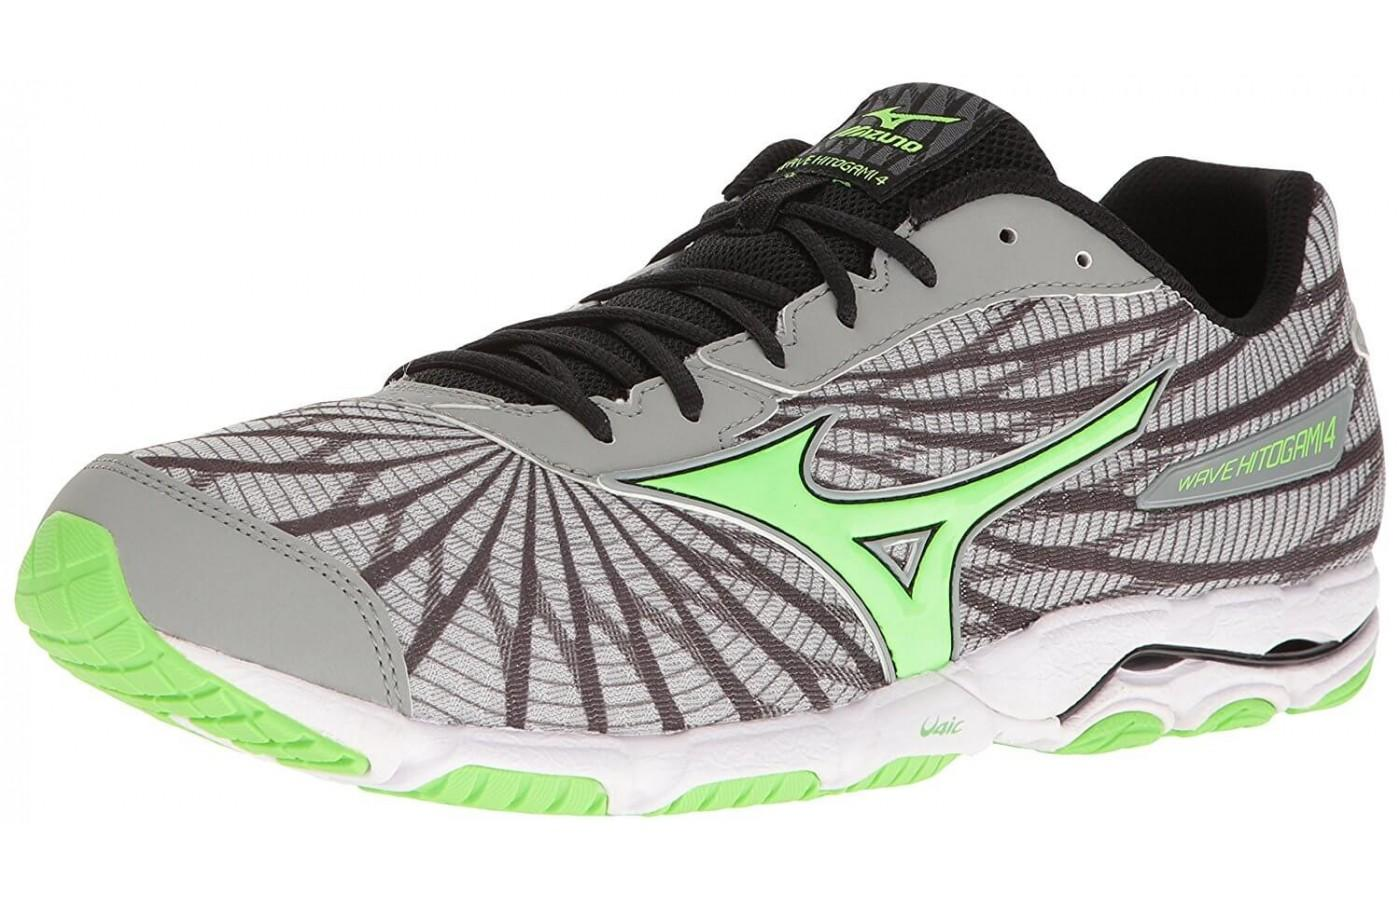 the Mizuno Wave Hitogami 4 is a lightweight road trainer for those with neutral pronation